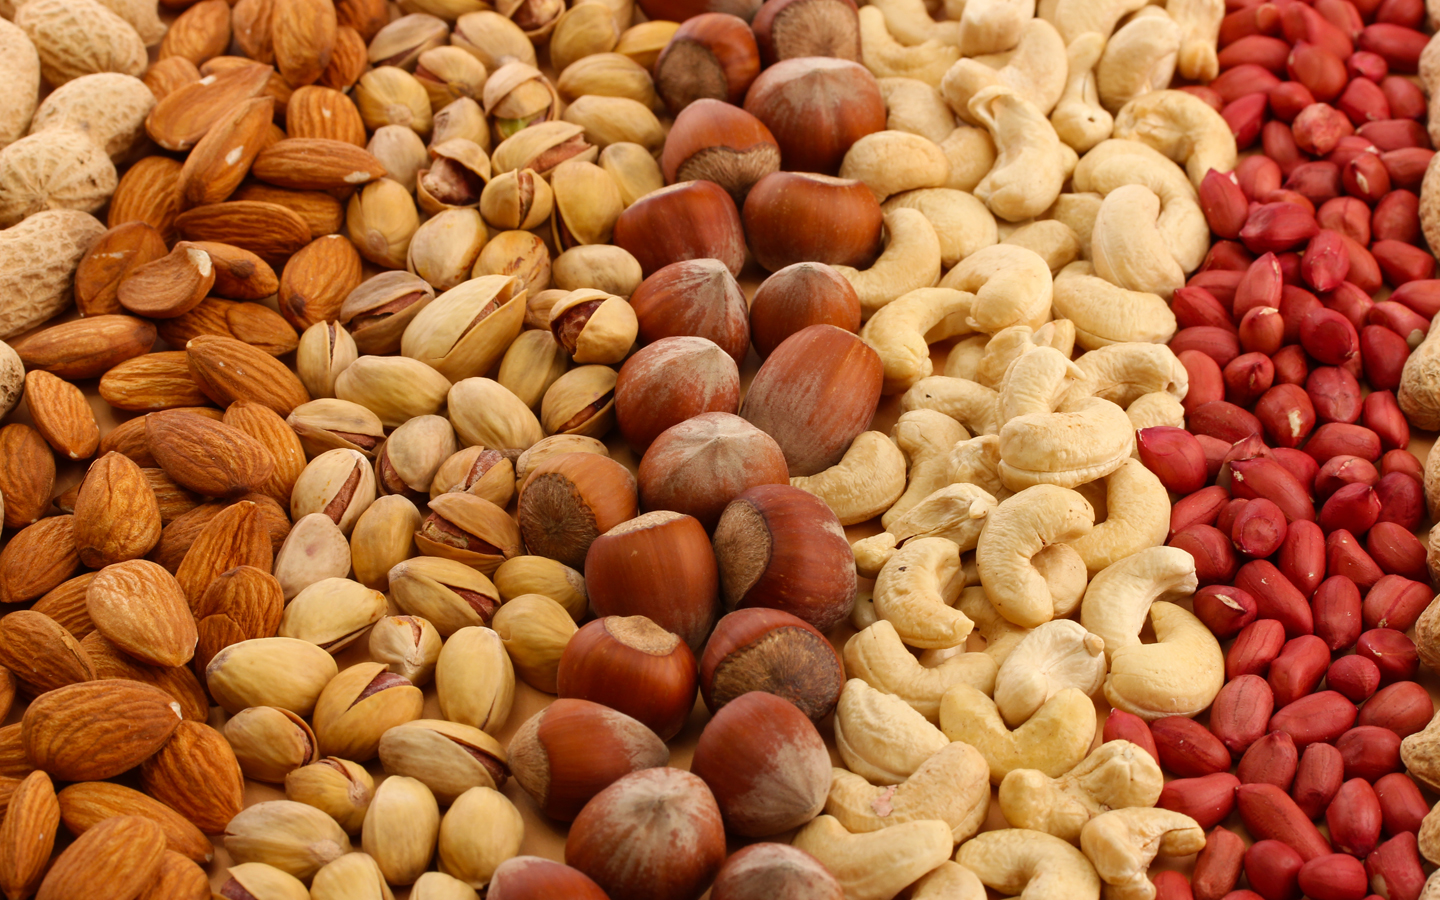 Dry fruits wallpaper - Dry Fruits Are Our Flagship Products That We Import And Export